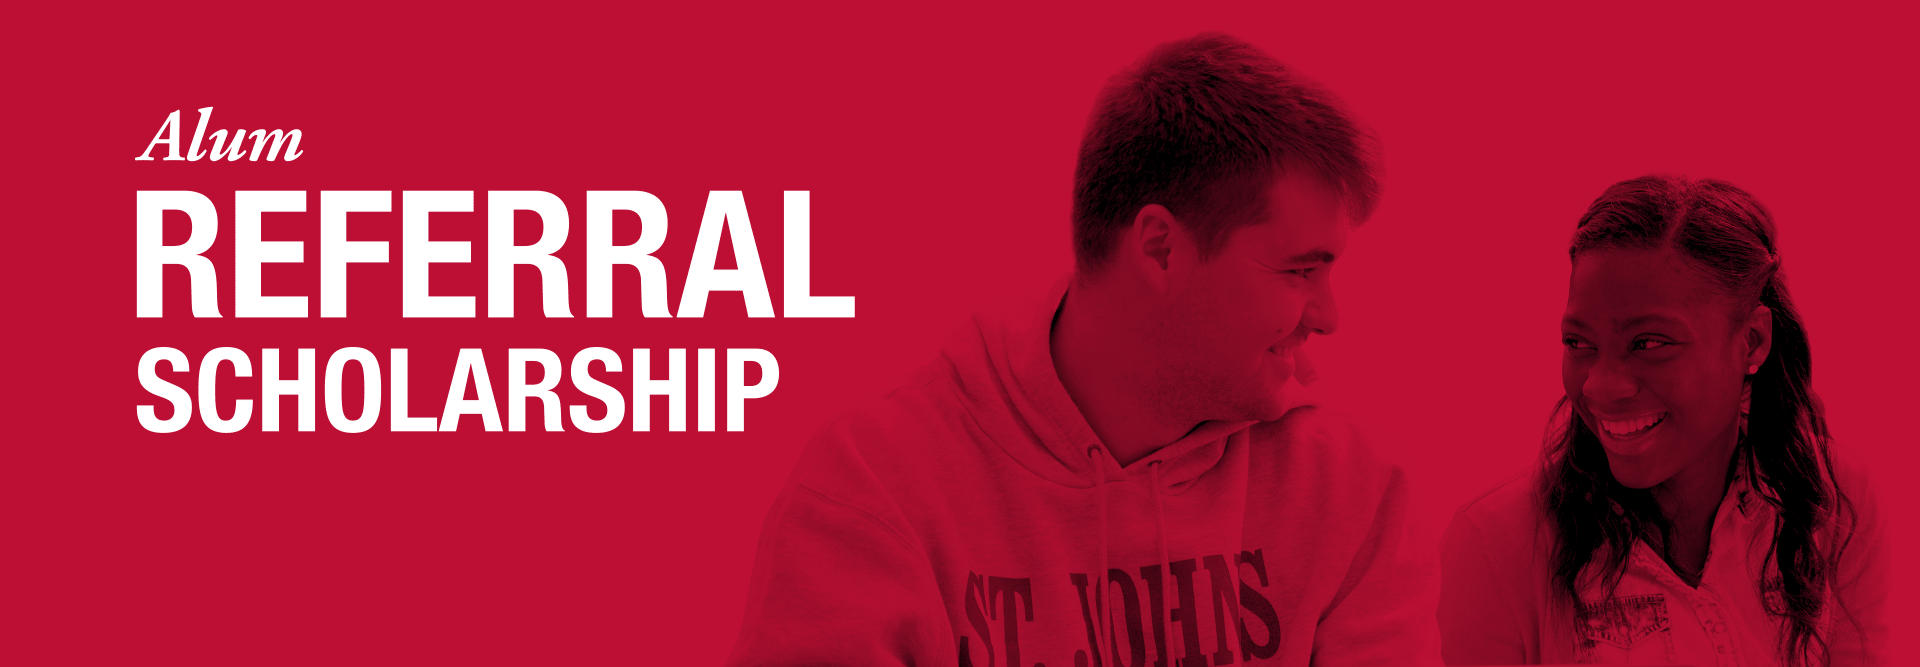 Alum Referral Scholarship